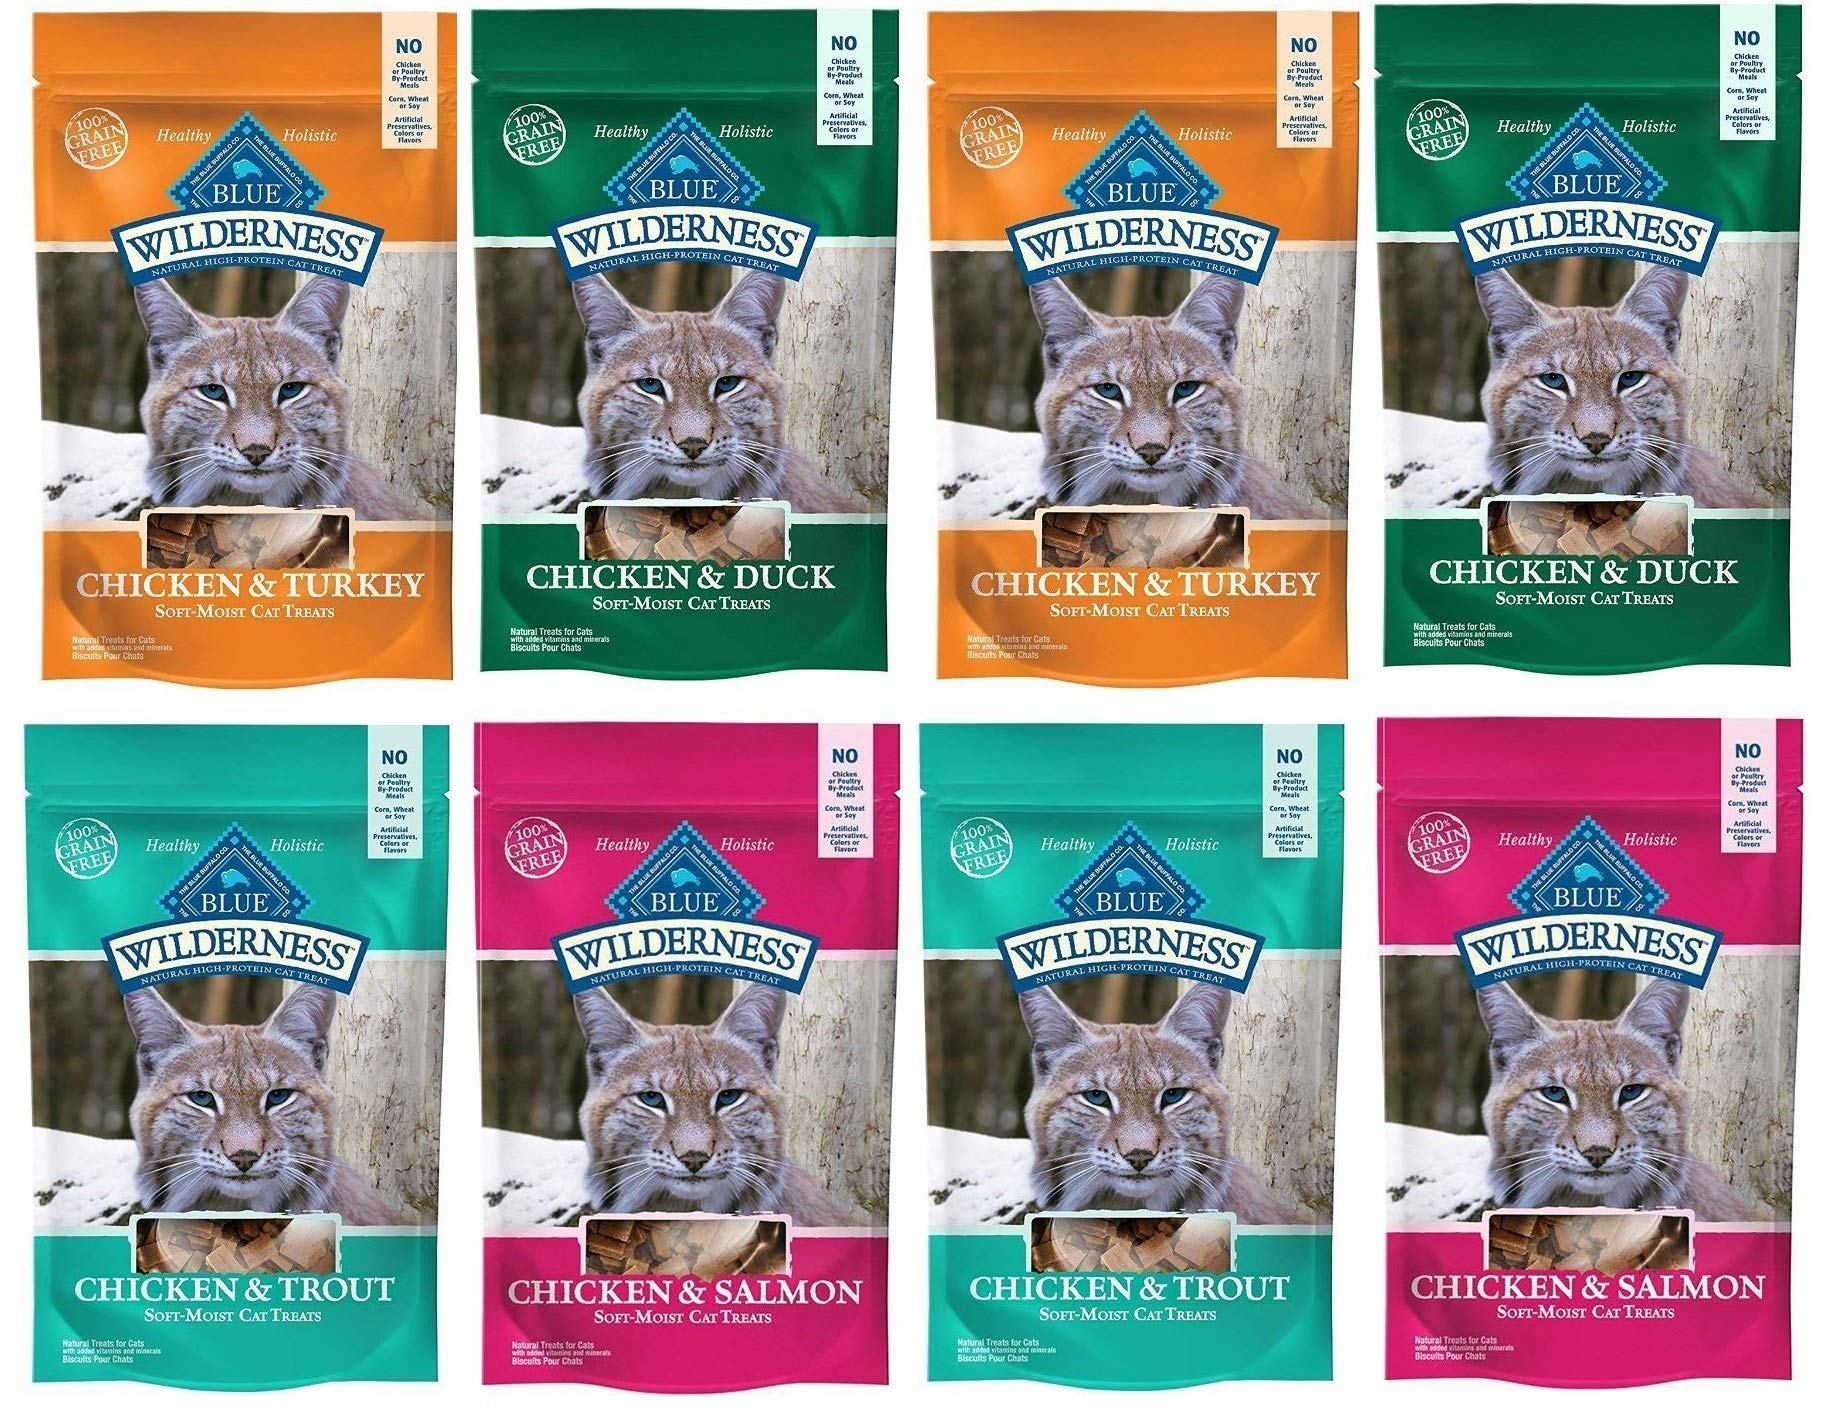 Blue Buffalo Wilderness Soft-Moist Grain-Free Cat Treats Variety Pack 16 Ounces - 4 Flavors (Chicken & Duck, Chicken & Trout, Chicken & Salmon, and Chicken & Turkey) - 4 Oz Each Flavor